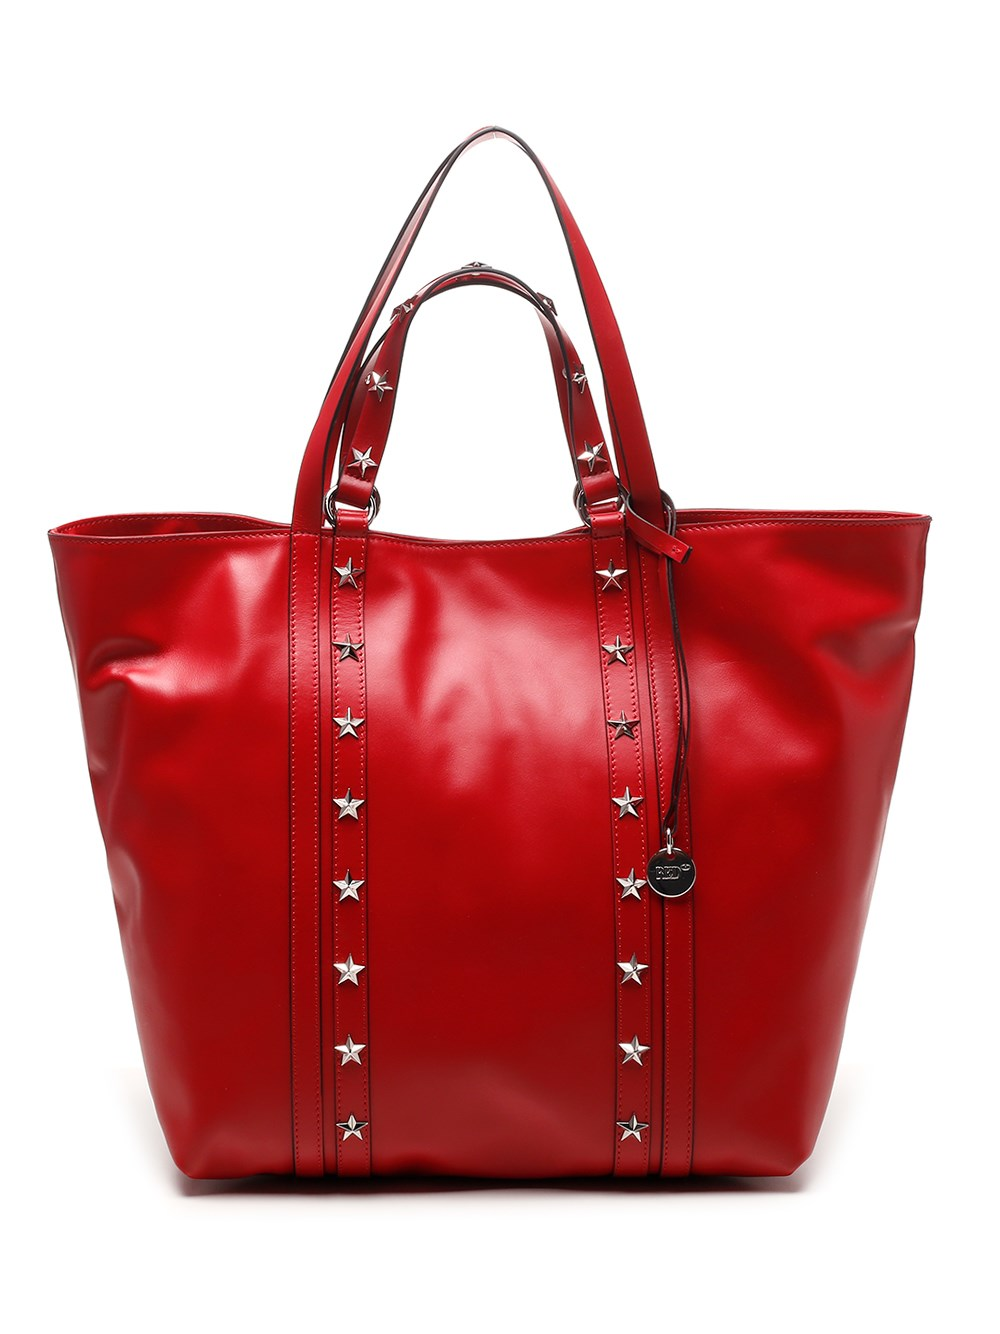 RED (V) Double Handles Tote Bag